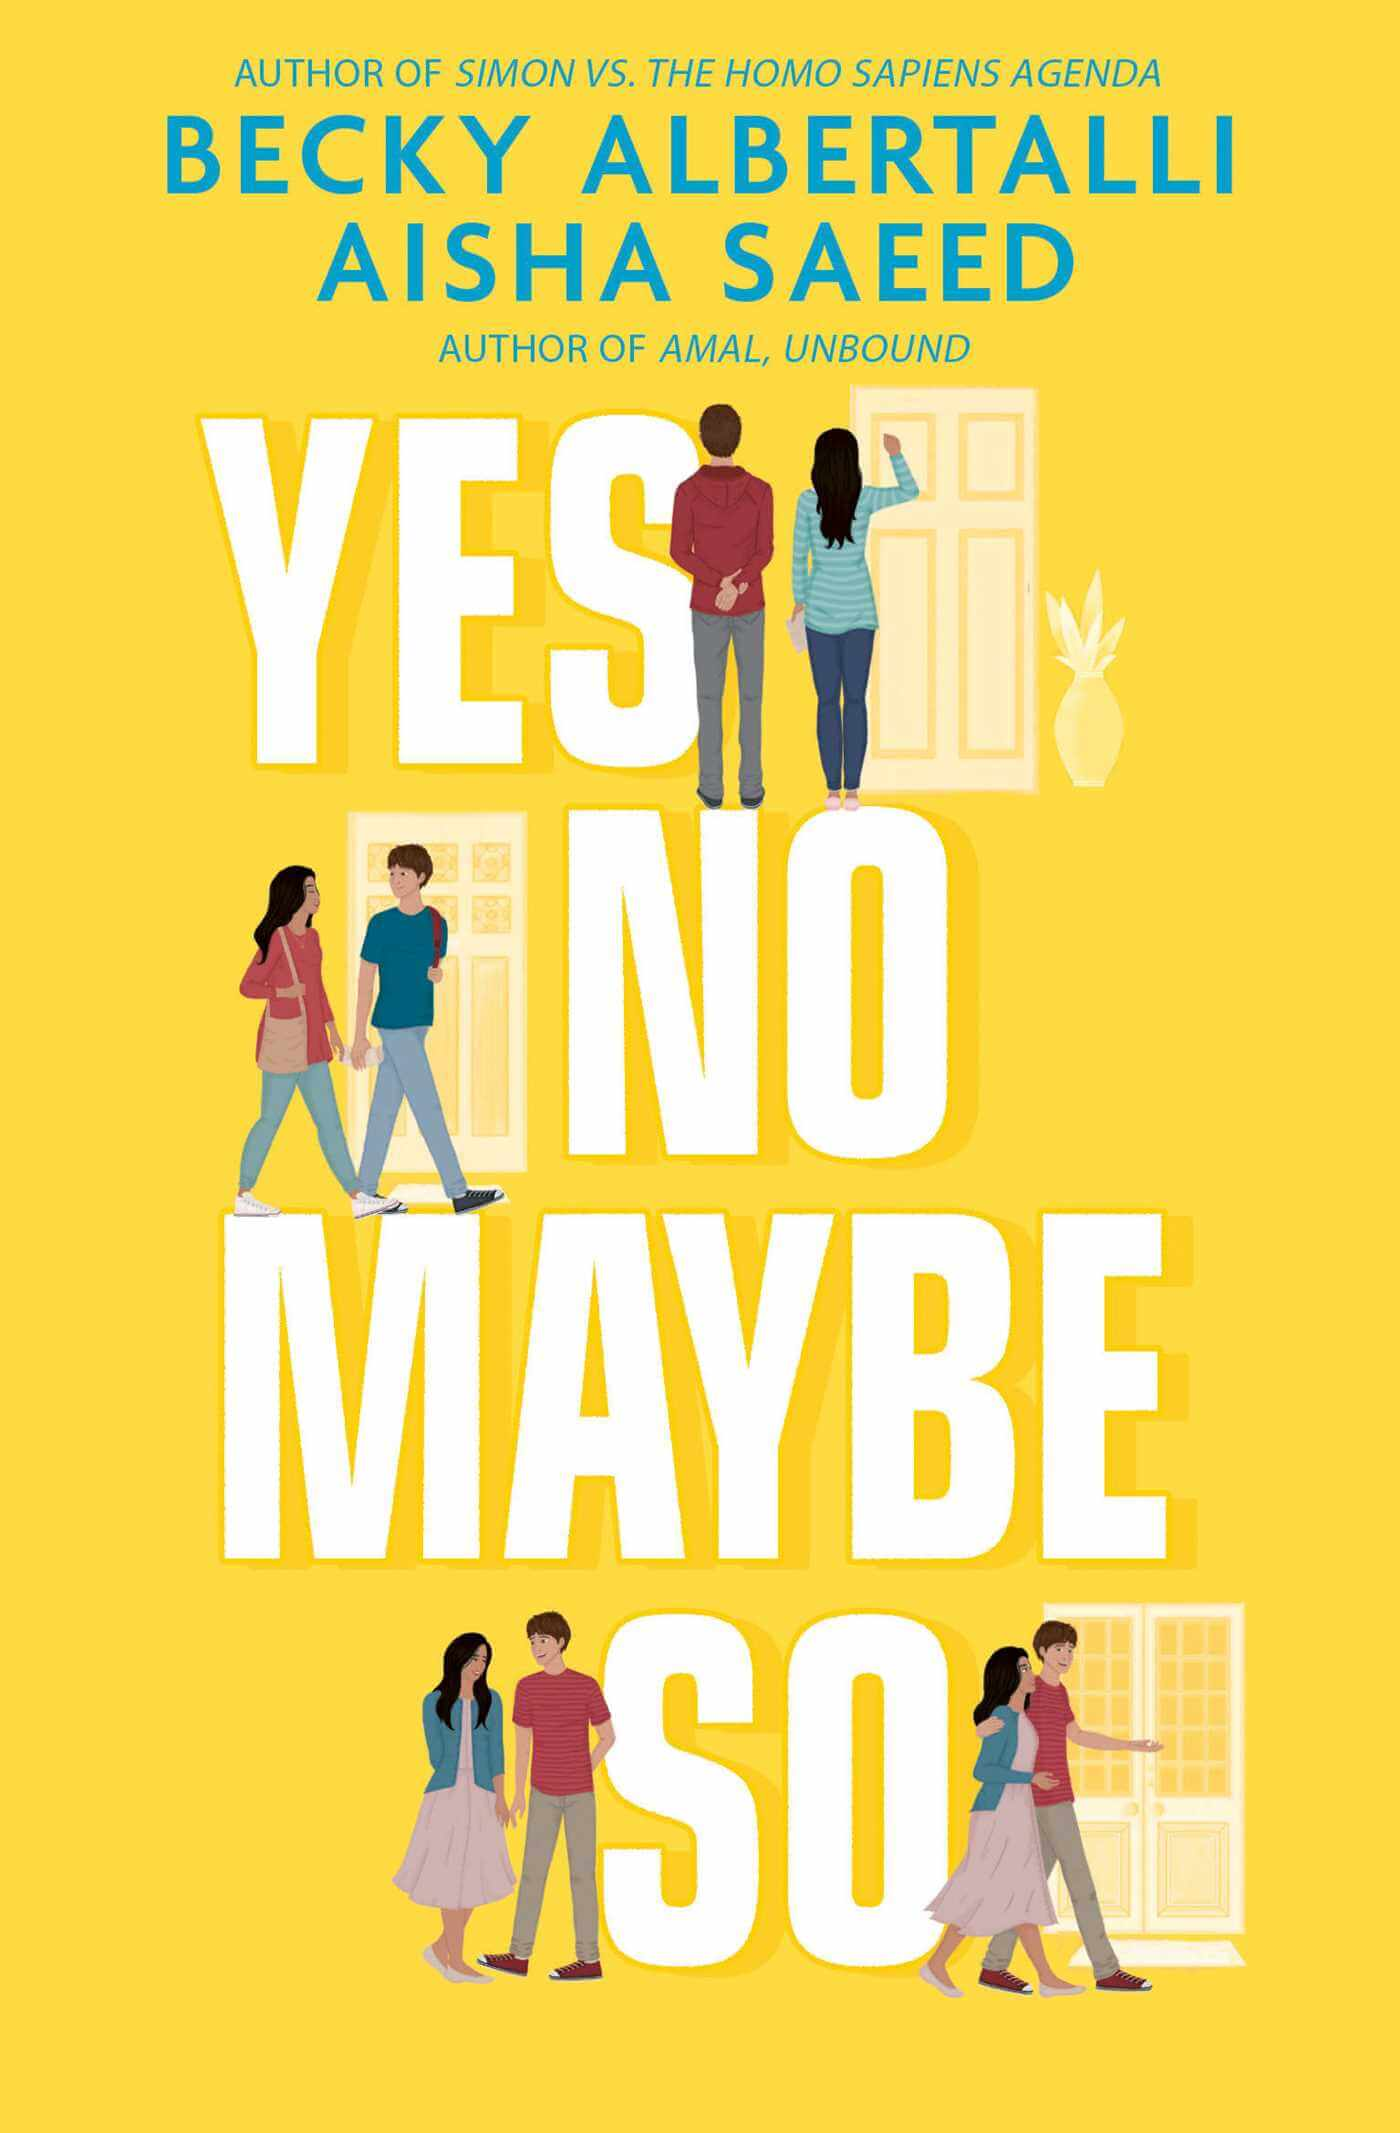 Book review of es No Maybe So by Becky Albertalli and Aisha Saeed